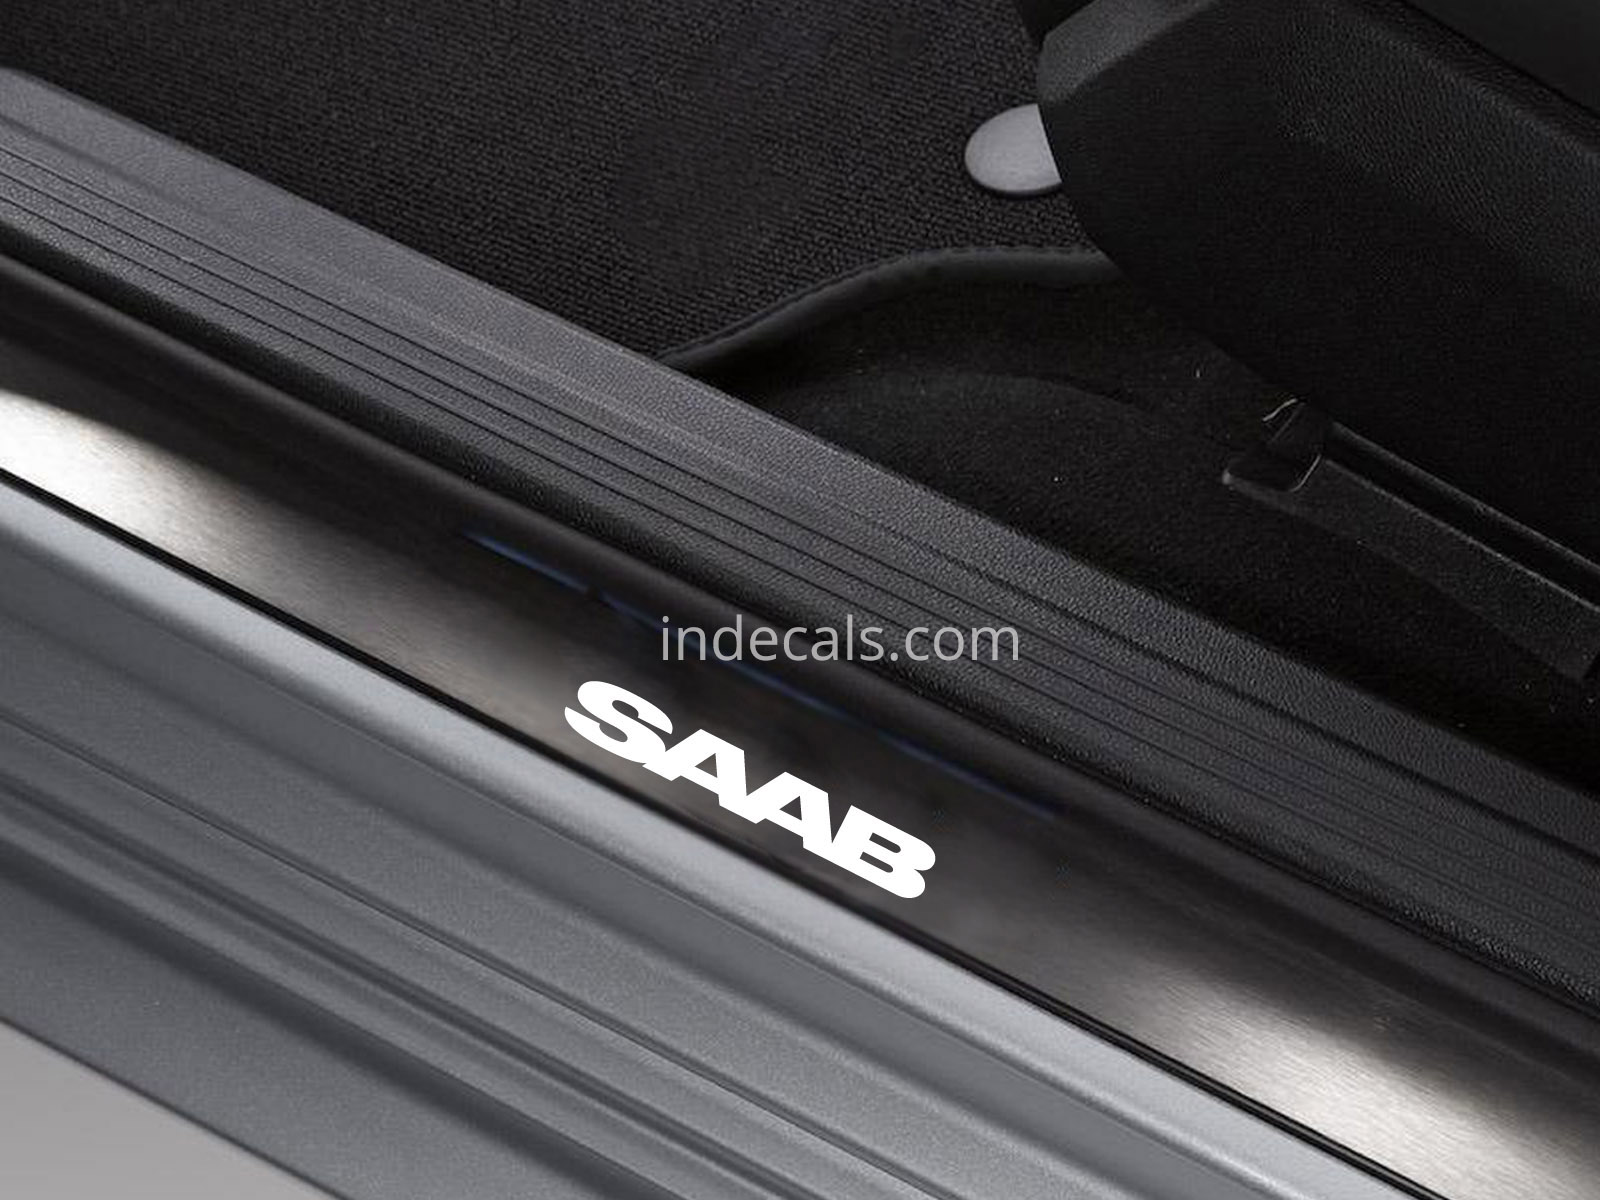 6 x Saab Stickers for Door Sills - White